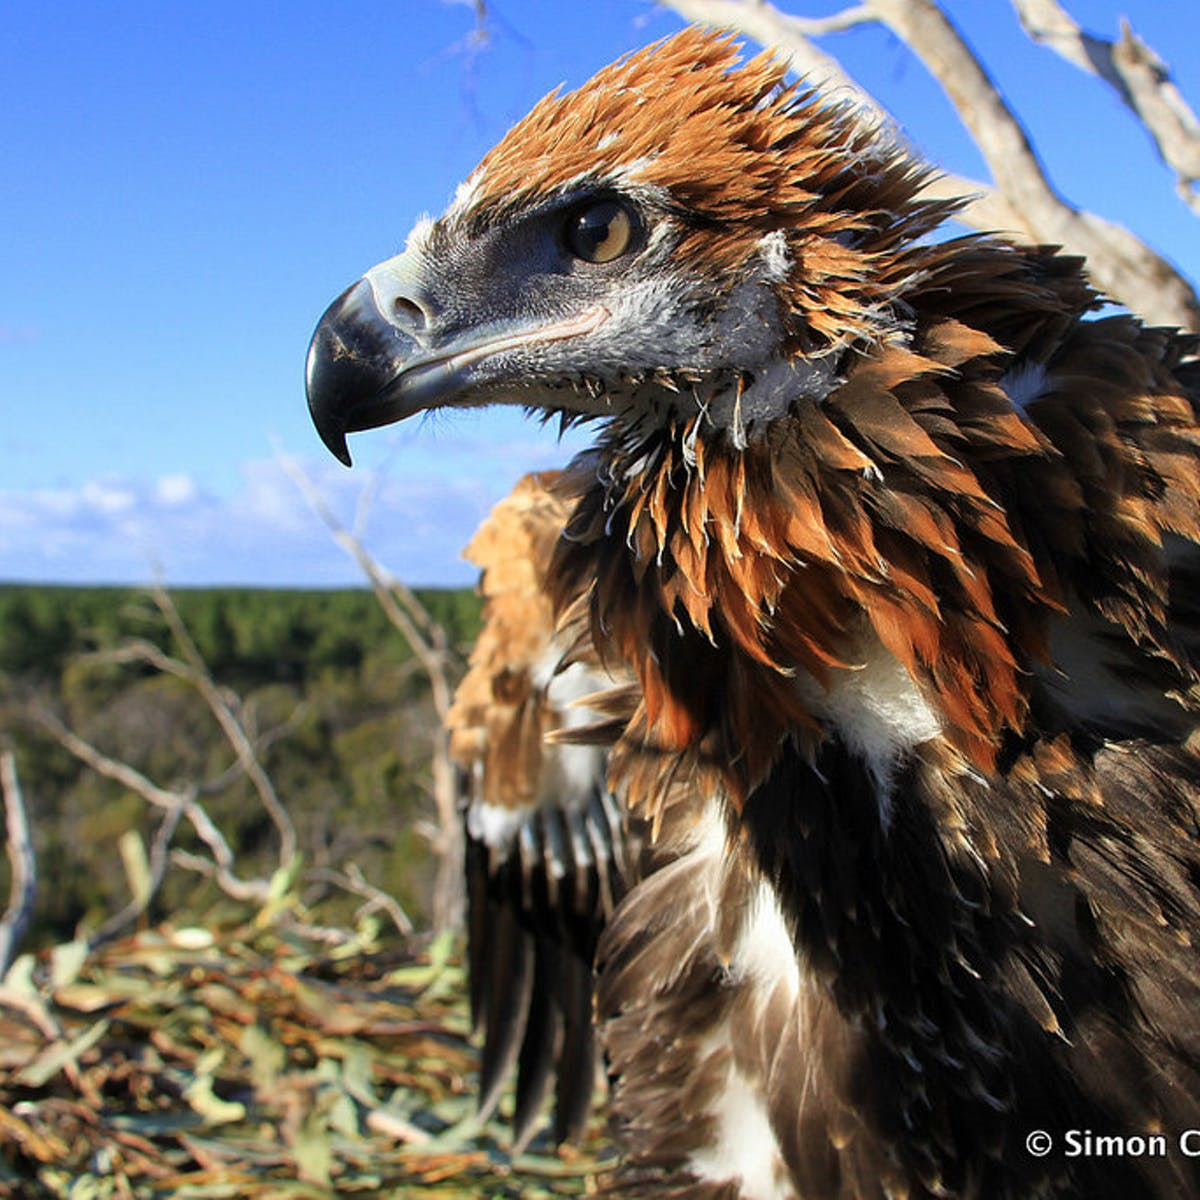 Mass Slaughter Of Wedge Tailed Eagles Could Have Australia Wide Consequences